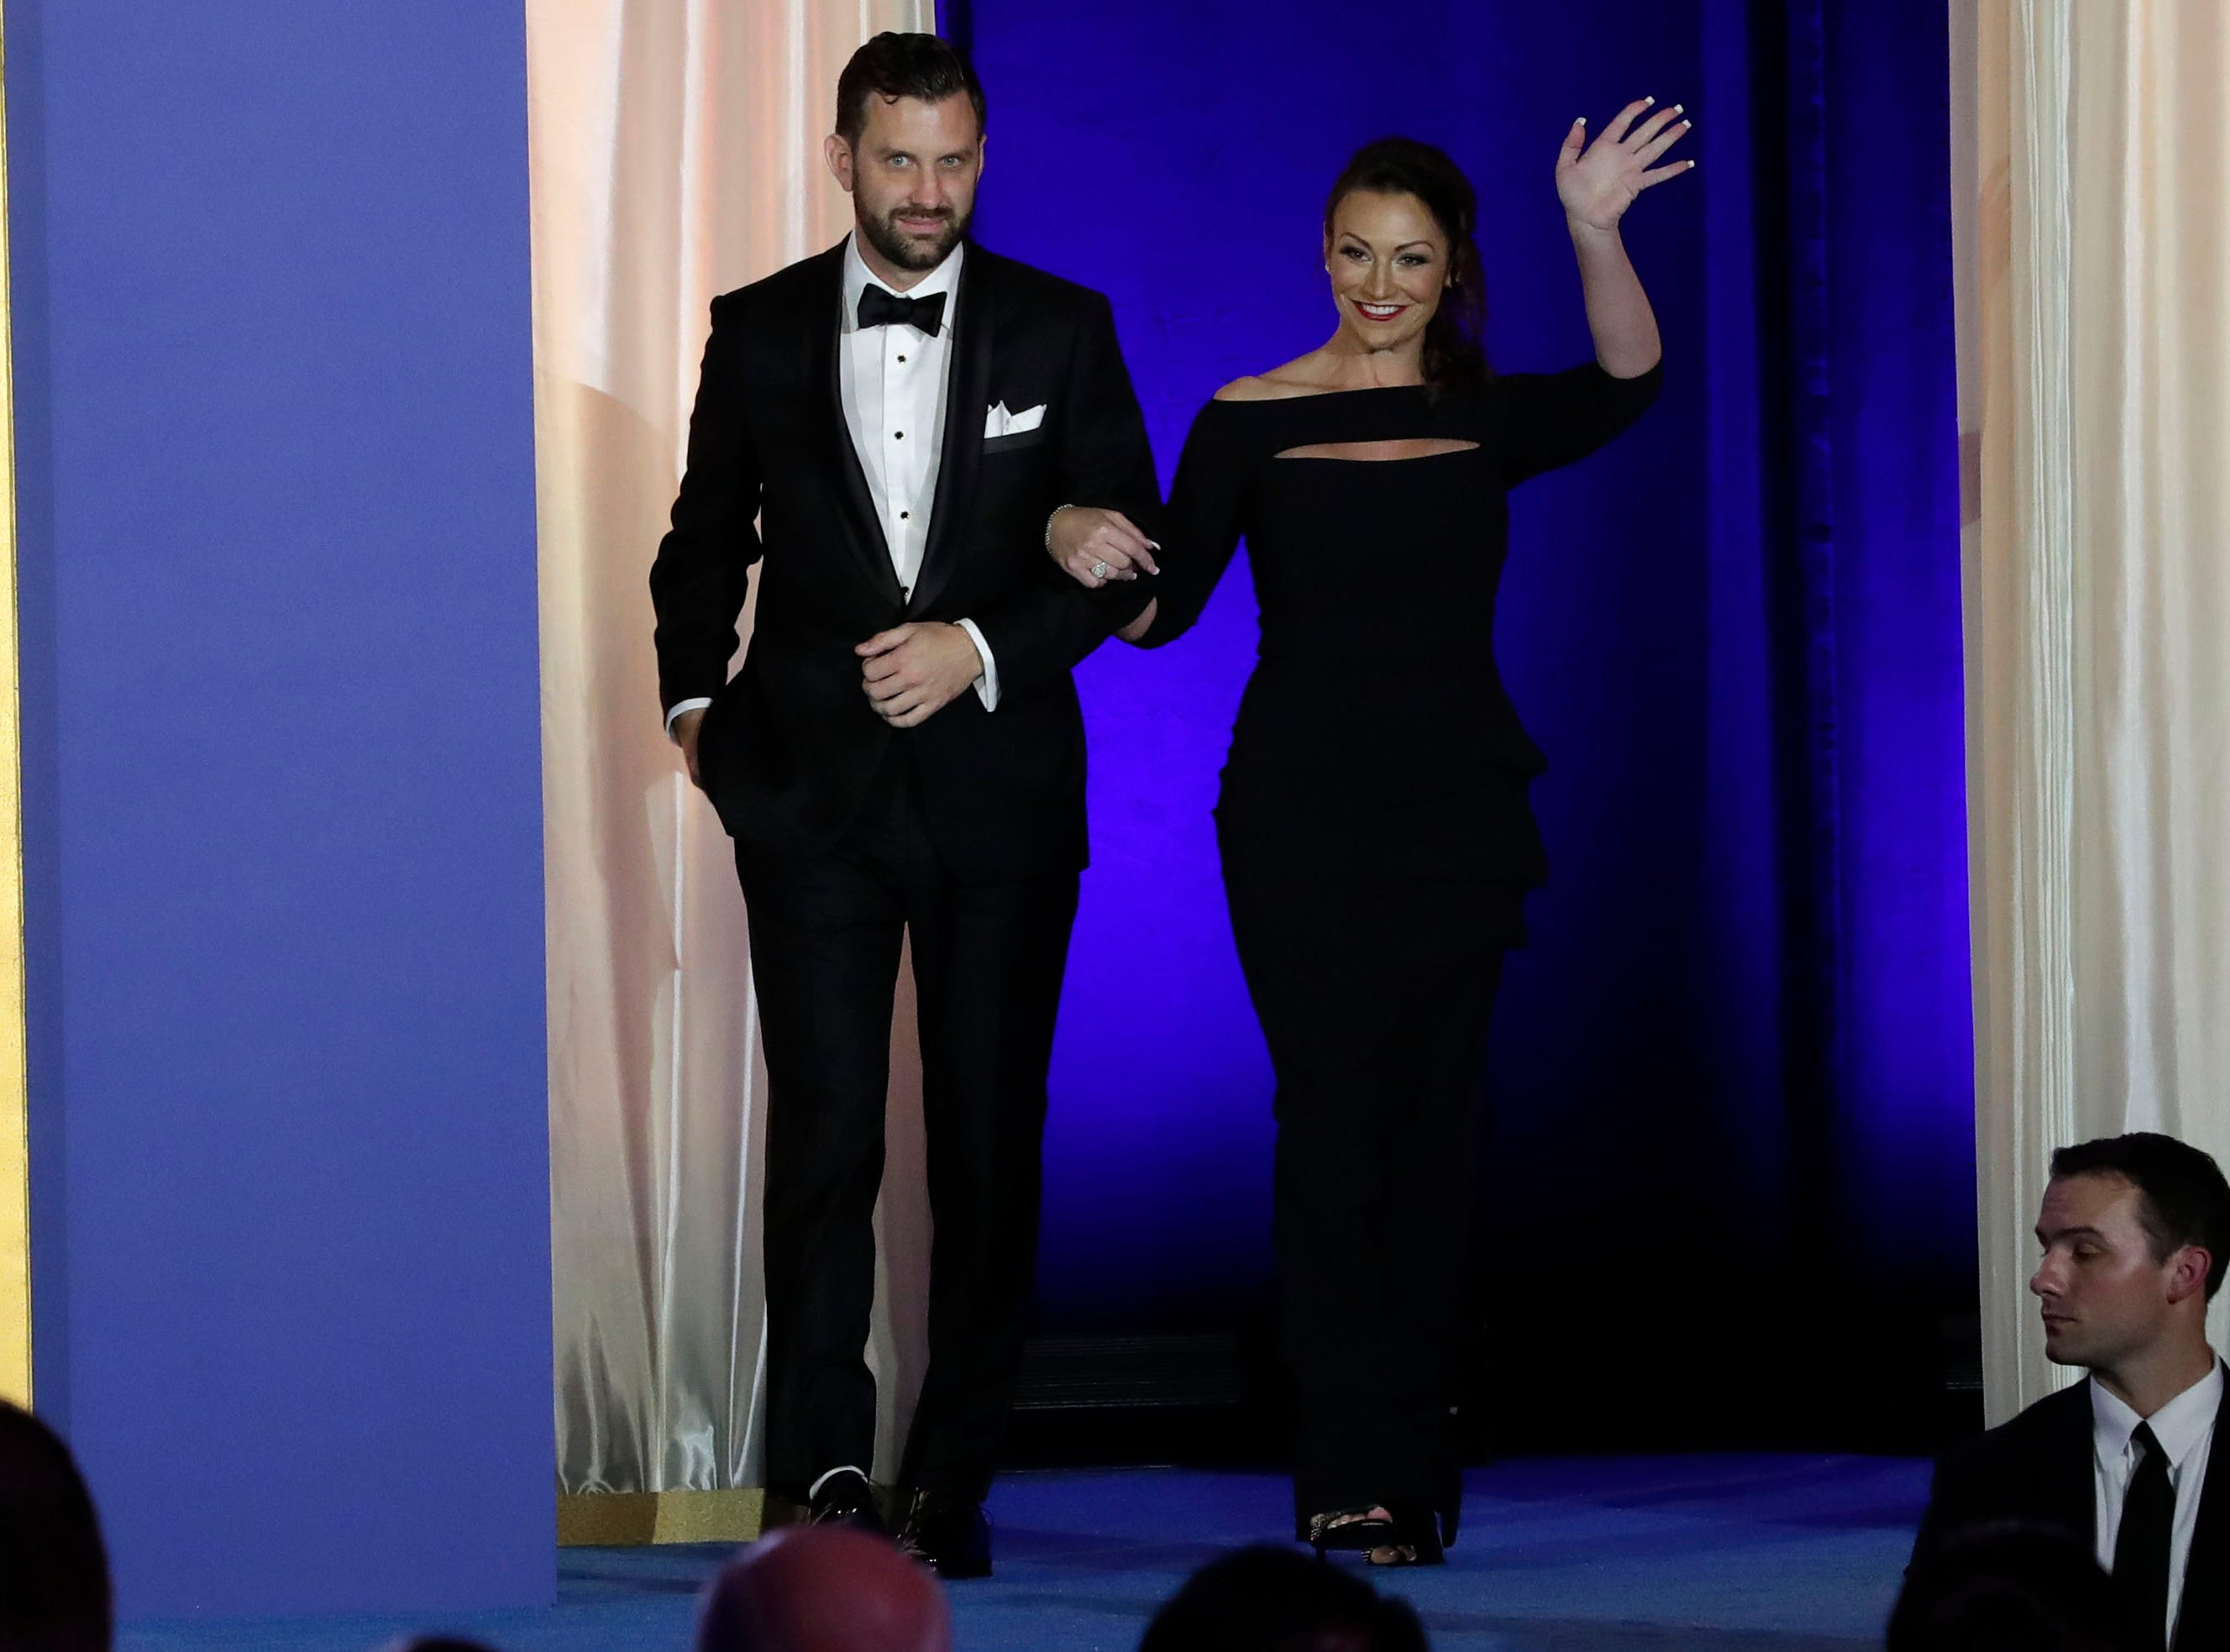 Hundreds of guests from all over Florida attend Florida's 46th Governor's Inaugural Ball at the Tucker Civic Center, Tuesday, Jan. 8, 2019. Commissioner of Agriculture and Consumer Services Nikki Fried waves to the crowd as she is escorted onto the stage.